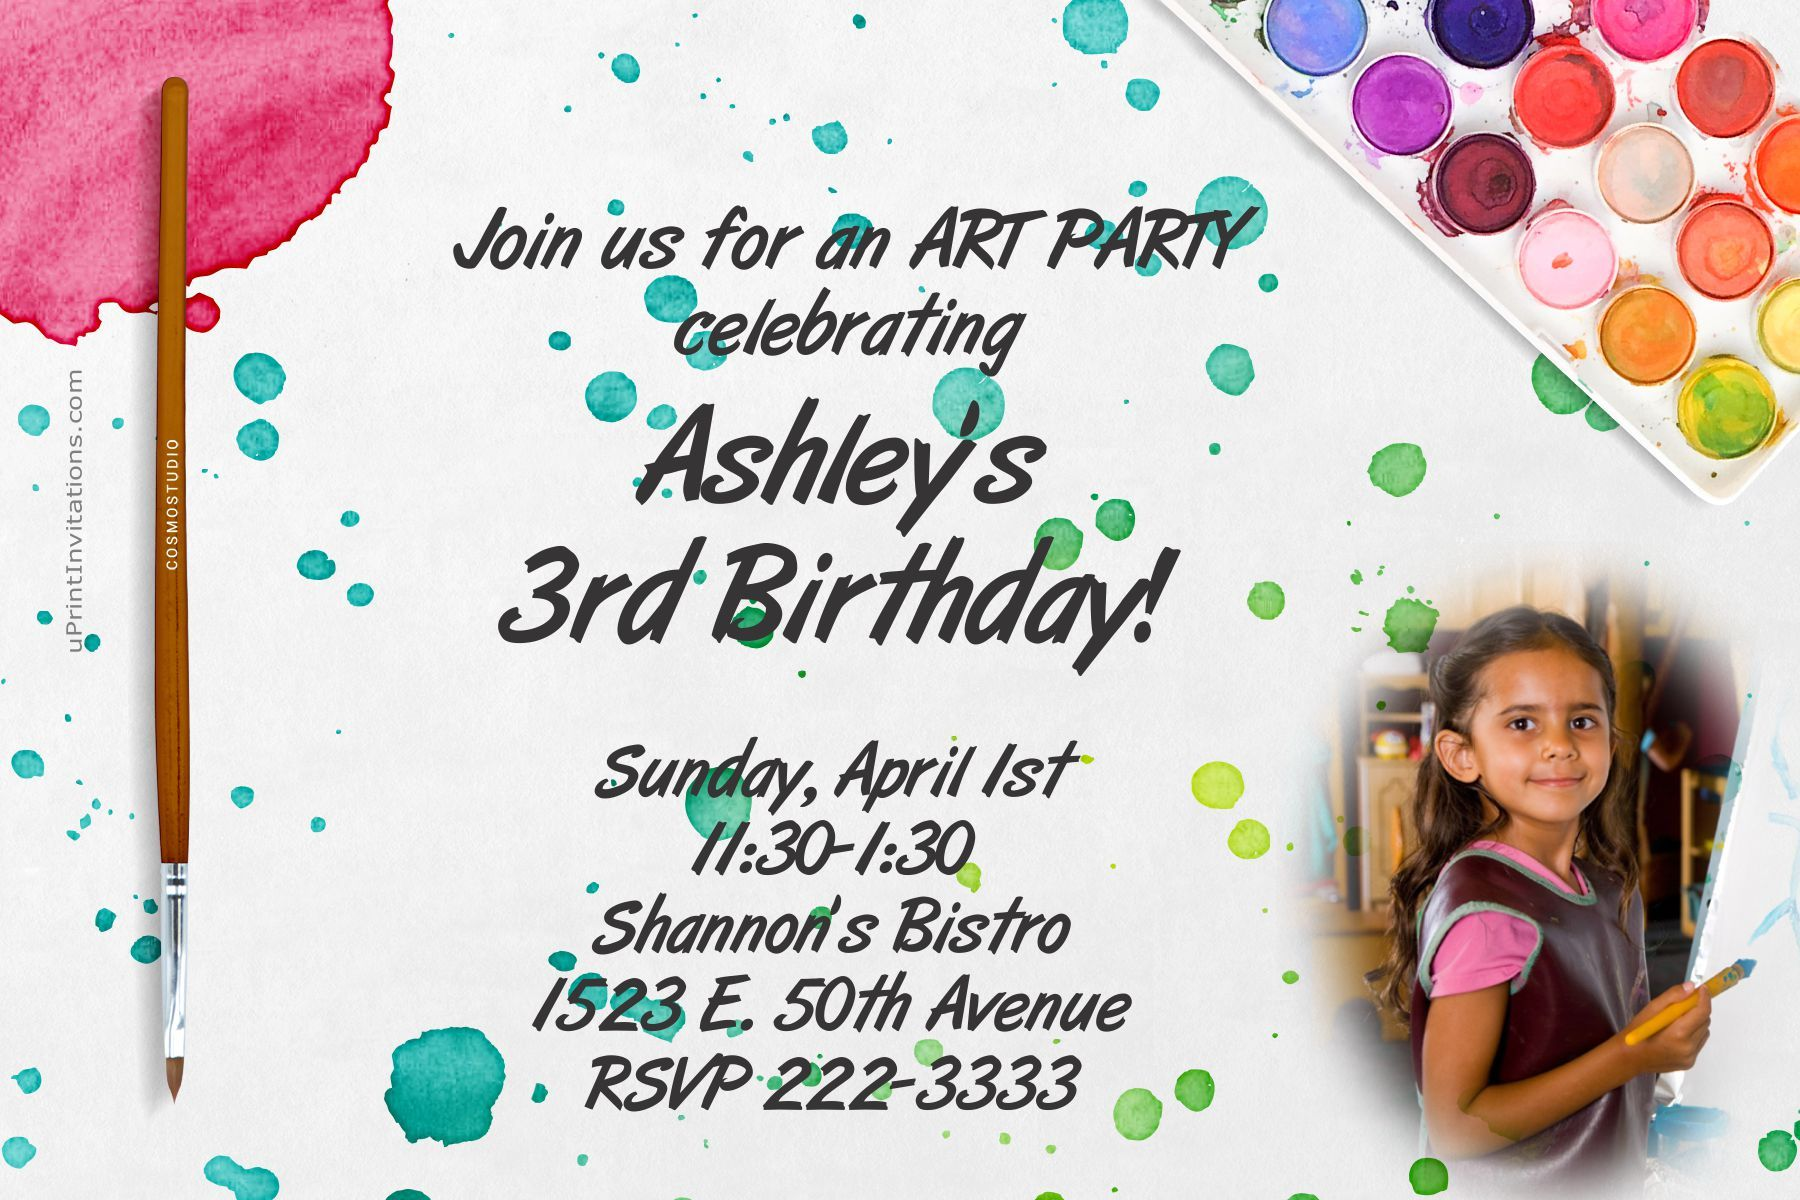 Water colors painting party birthday invitations- Any Wording ...